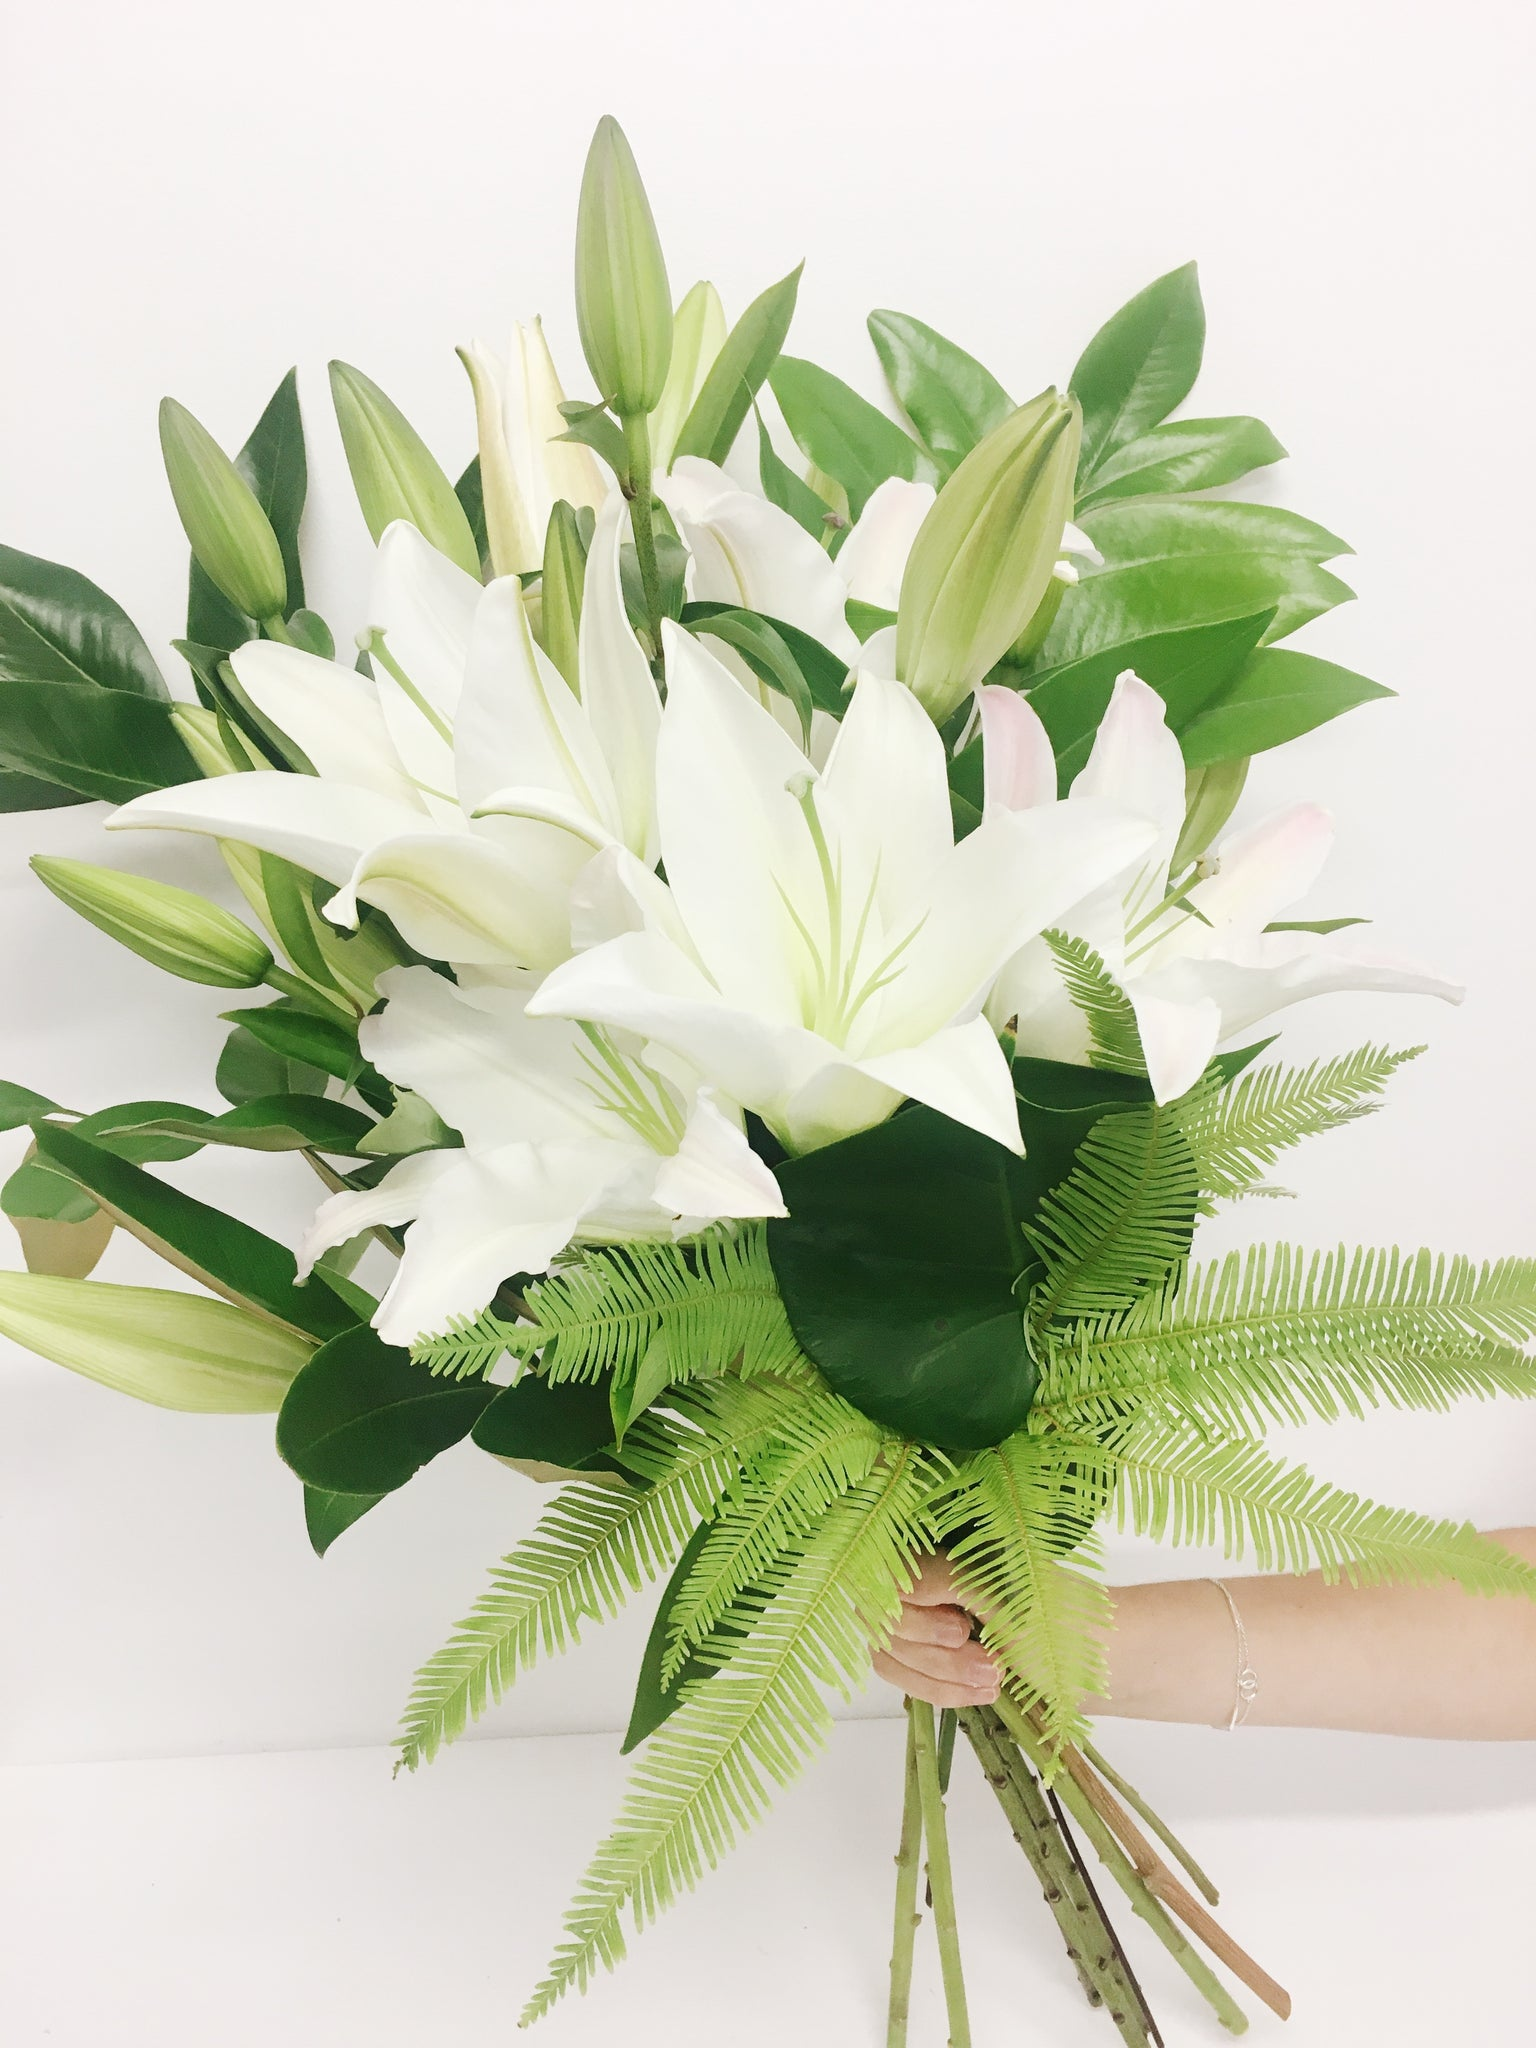 buderim Buderim Florist Buderim flower delivery bouquet Maroochydore Coolum Beach florist Noosa Yaroomba Ninderry Sunshine Coast flowers bouquet Marcoola Peregian beach Peregian Springs sunshine beach Marcus Beach Tewantin Noosaville Noosa Heads roses natives Lilys proteas Kawana Caloundra Birtinya Sippy Downs Mountain Creek cotton tree pacific paradise twin waters Mount Coolum